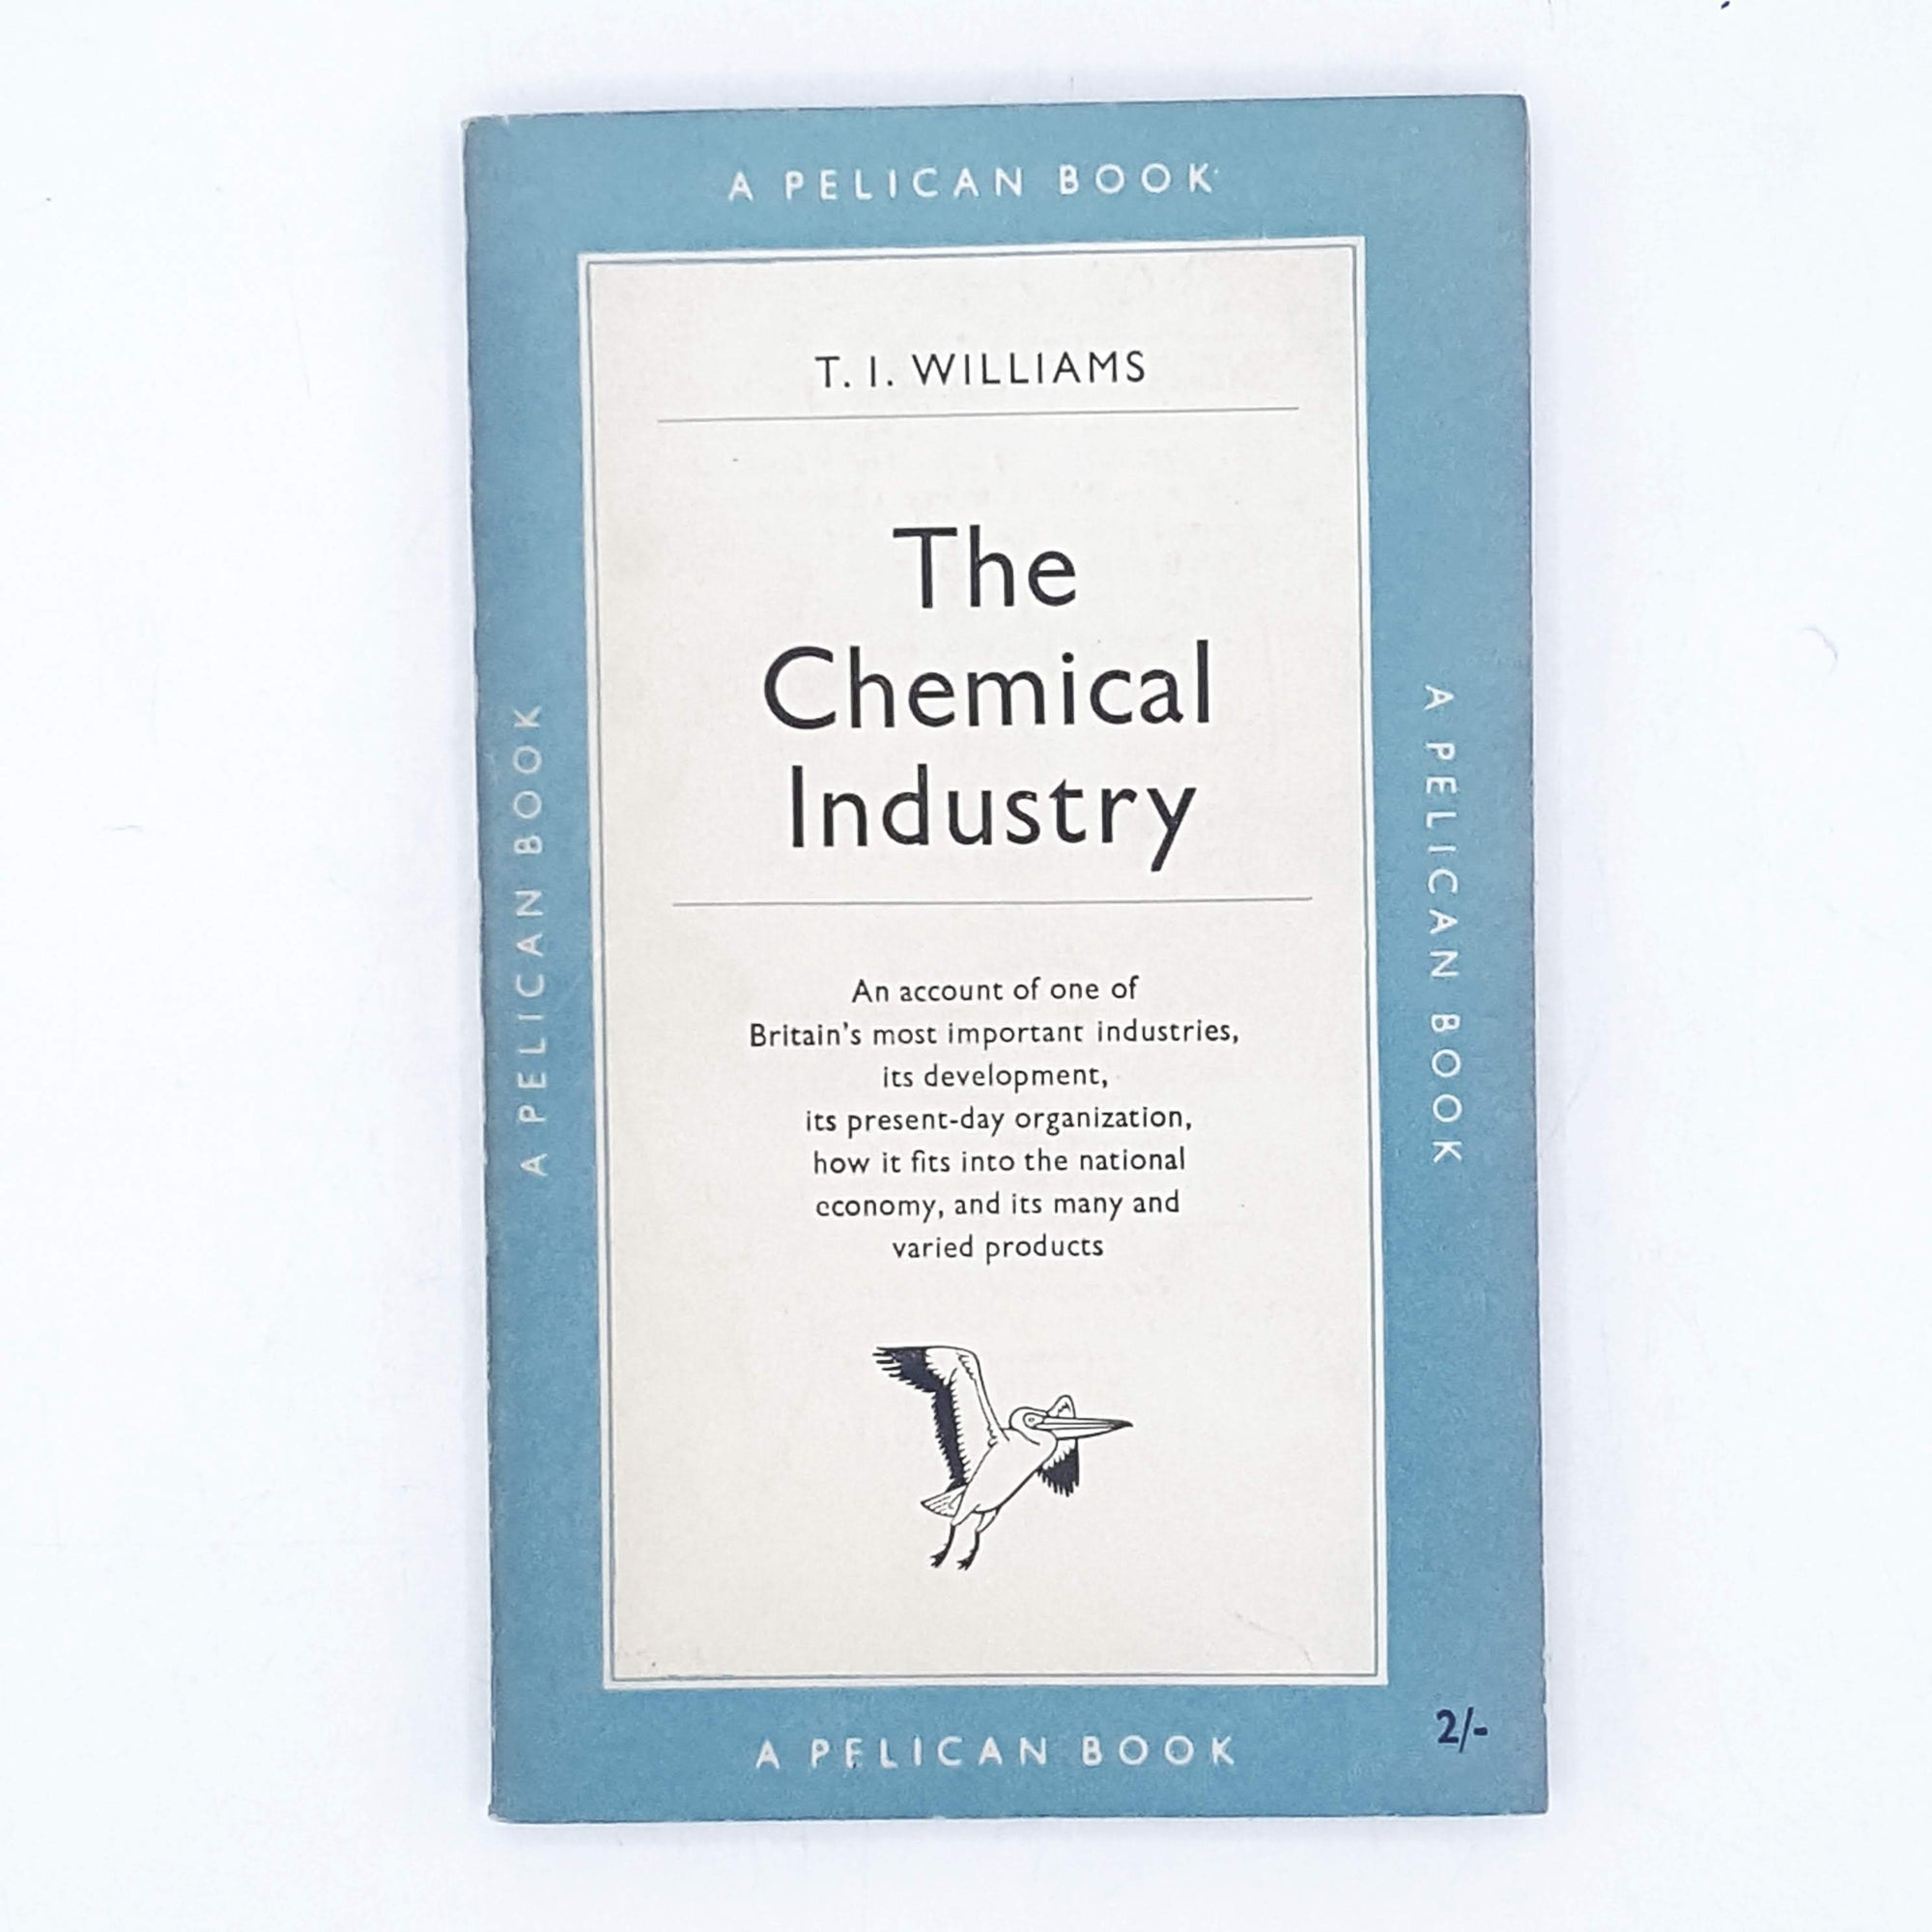 The Chemical Industry by T. I. Williams 1953